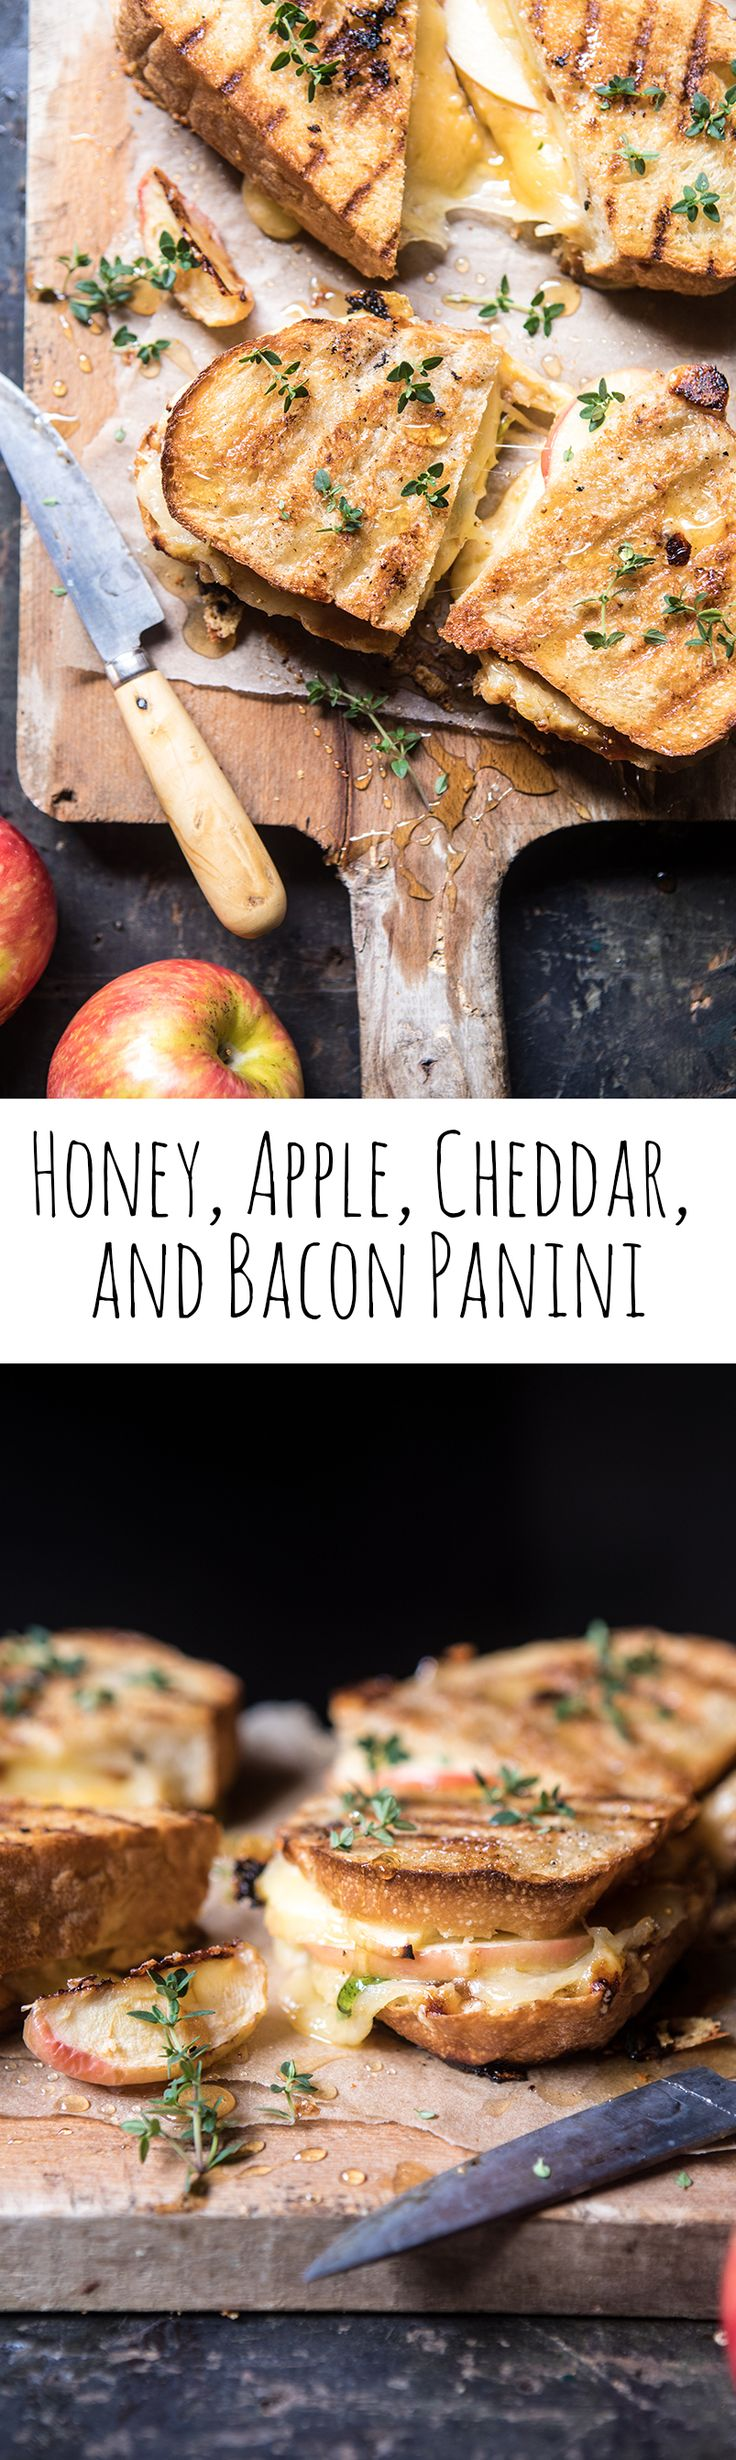 Honey, Apple, Cheddar, and Bacon Panini | halfbakedharvest.com @hbharvest